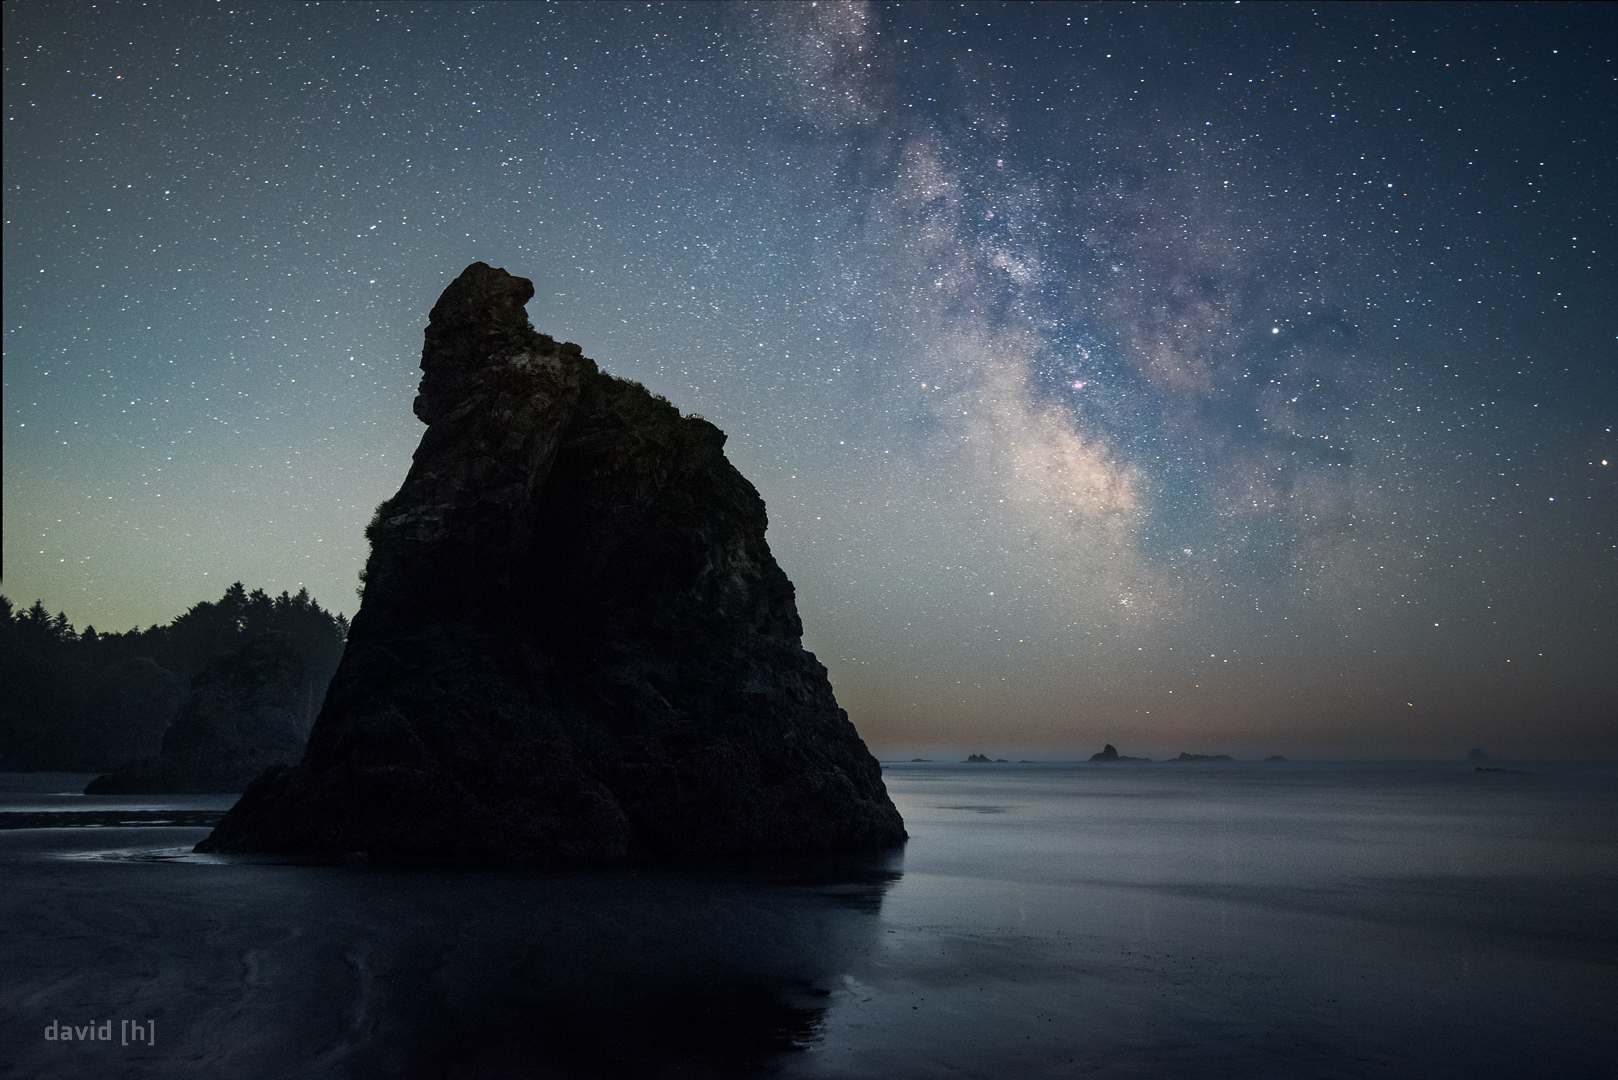 The Milky Way next to a sea stack at Ruby Beach. The rising moon starts illuminating the sky from the left, and soon thereafter would wash out the stars completely.